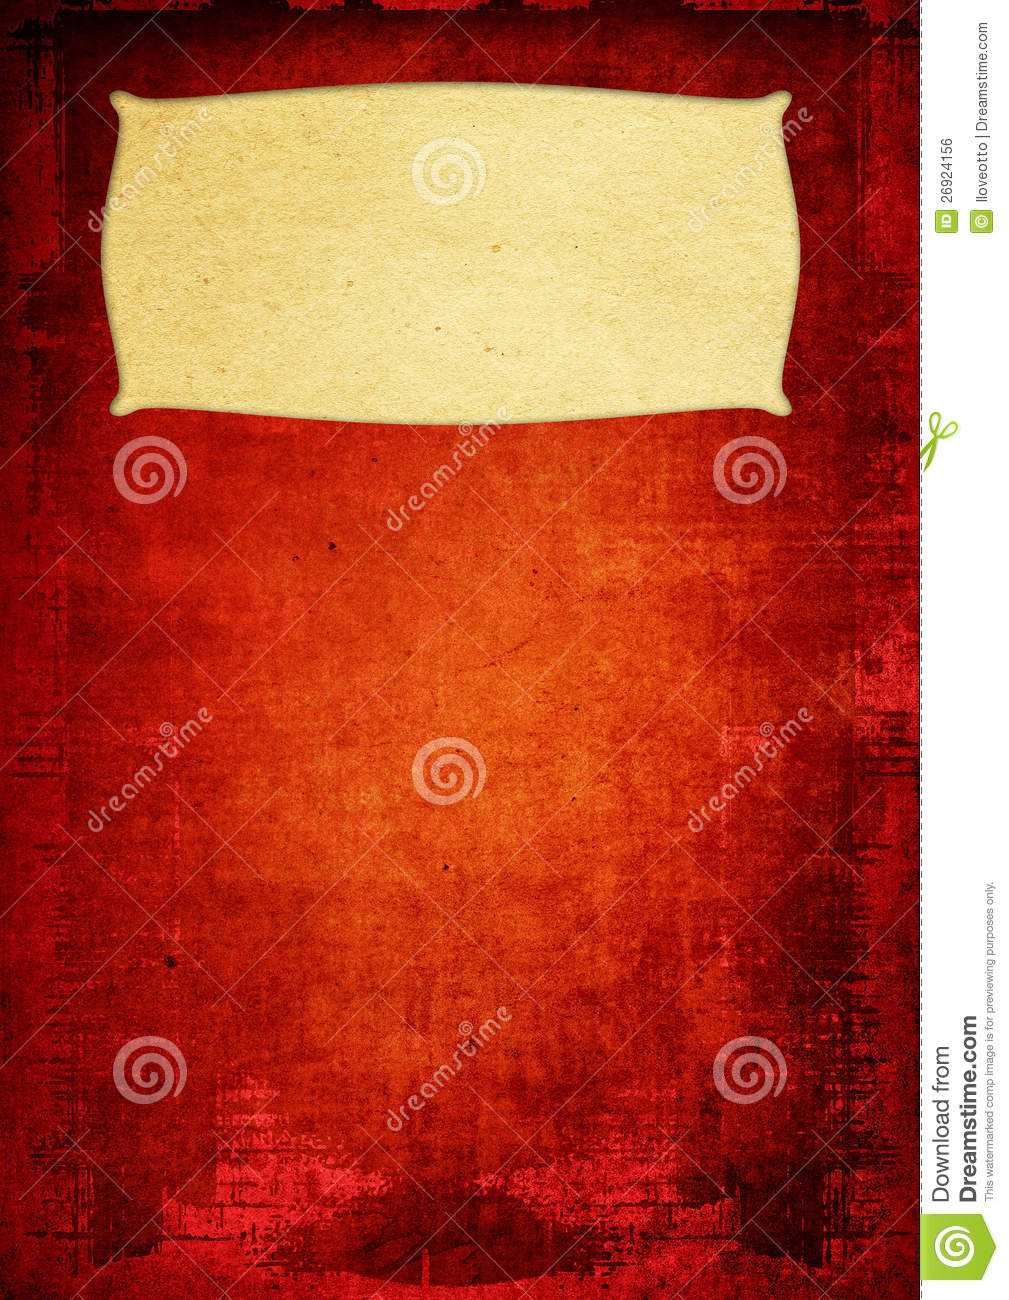 Book Cover Background Free : Backgrounds book cover royalty free stock image